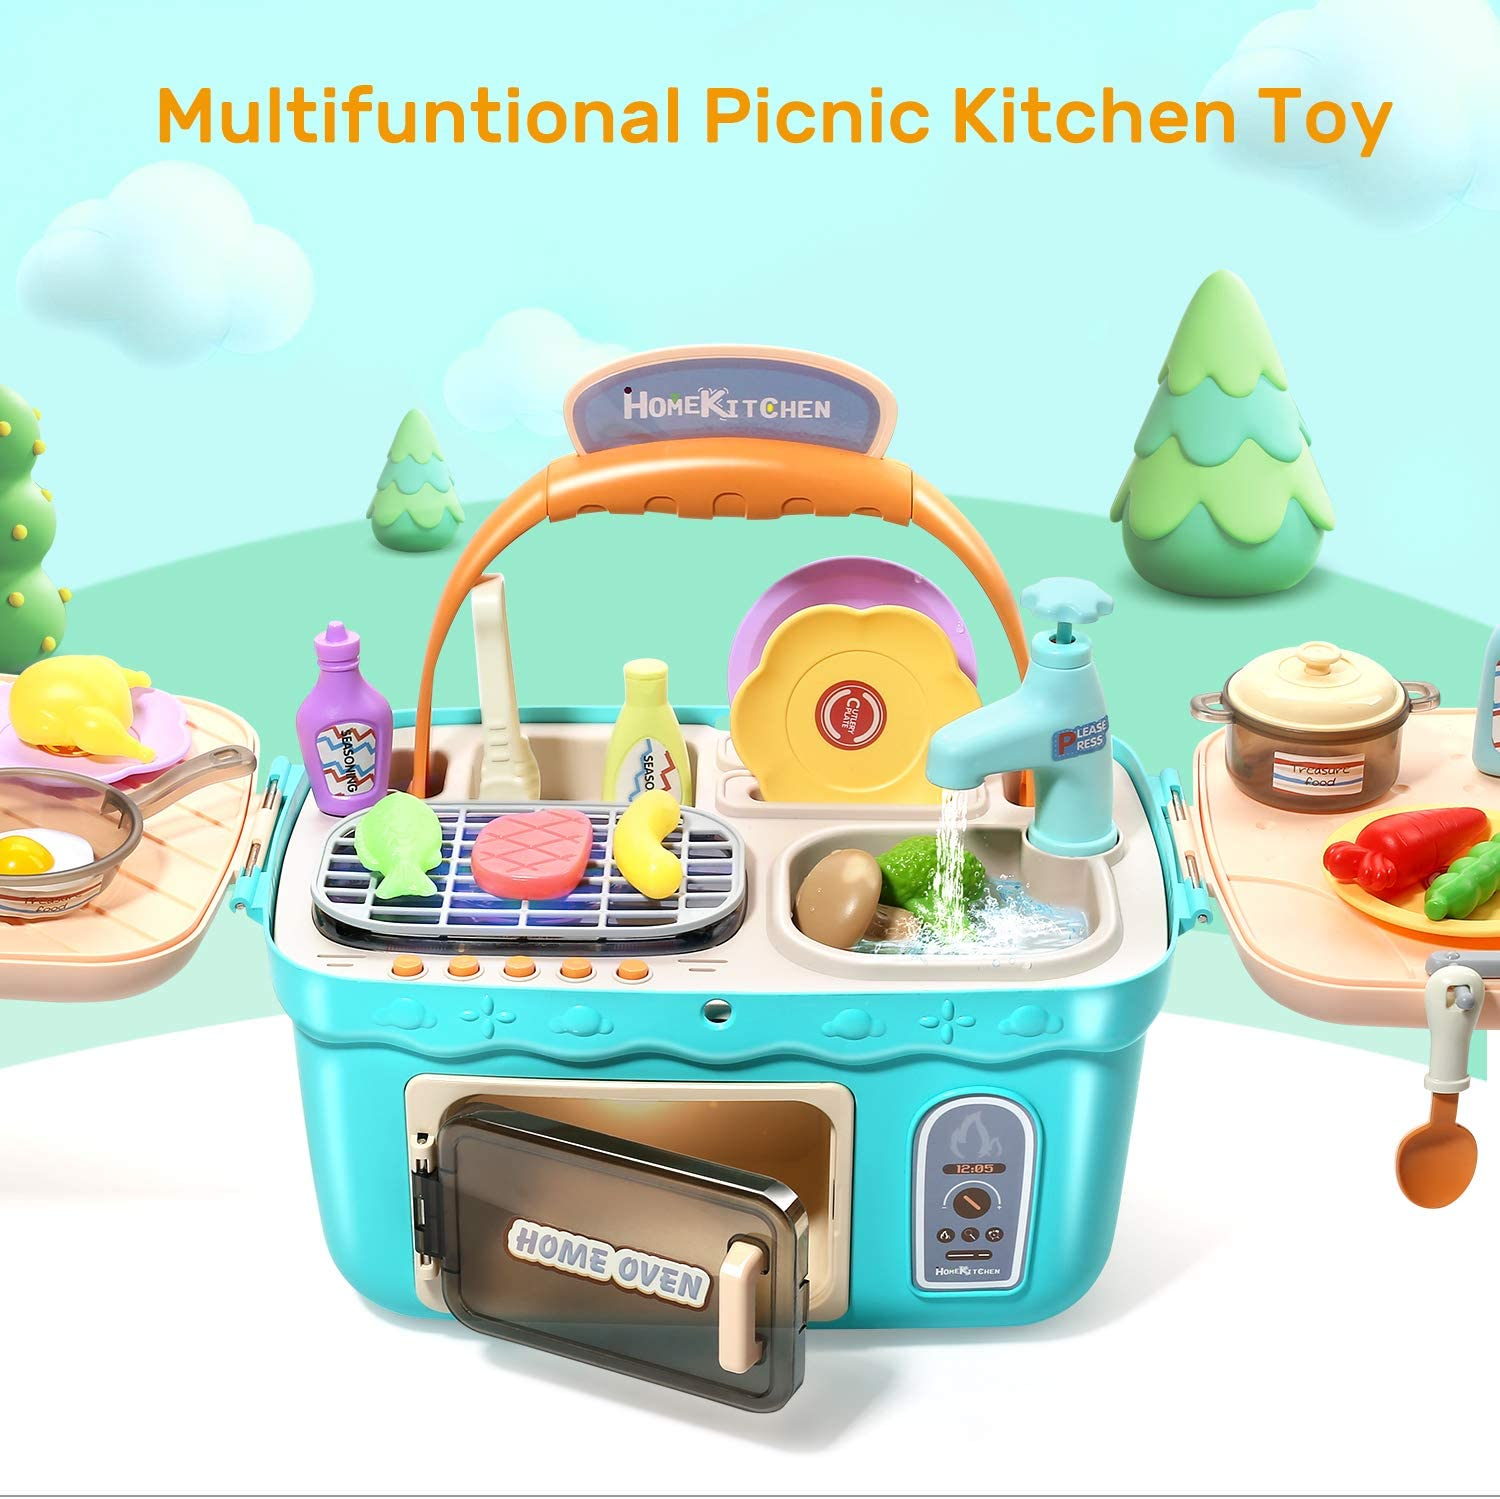 CUTE STONE Kids Play Kitchen Picnic Playset,Portable Picnic Basket Toys with Musics /& Lights,Color Changing Play Food,Kitchen Sink Toys and Pretend Play Oven,Kitchen Toy Sets Gift for Kids Boys Girls